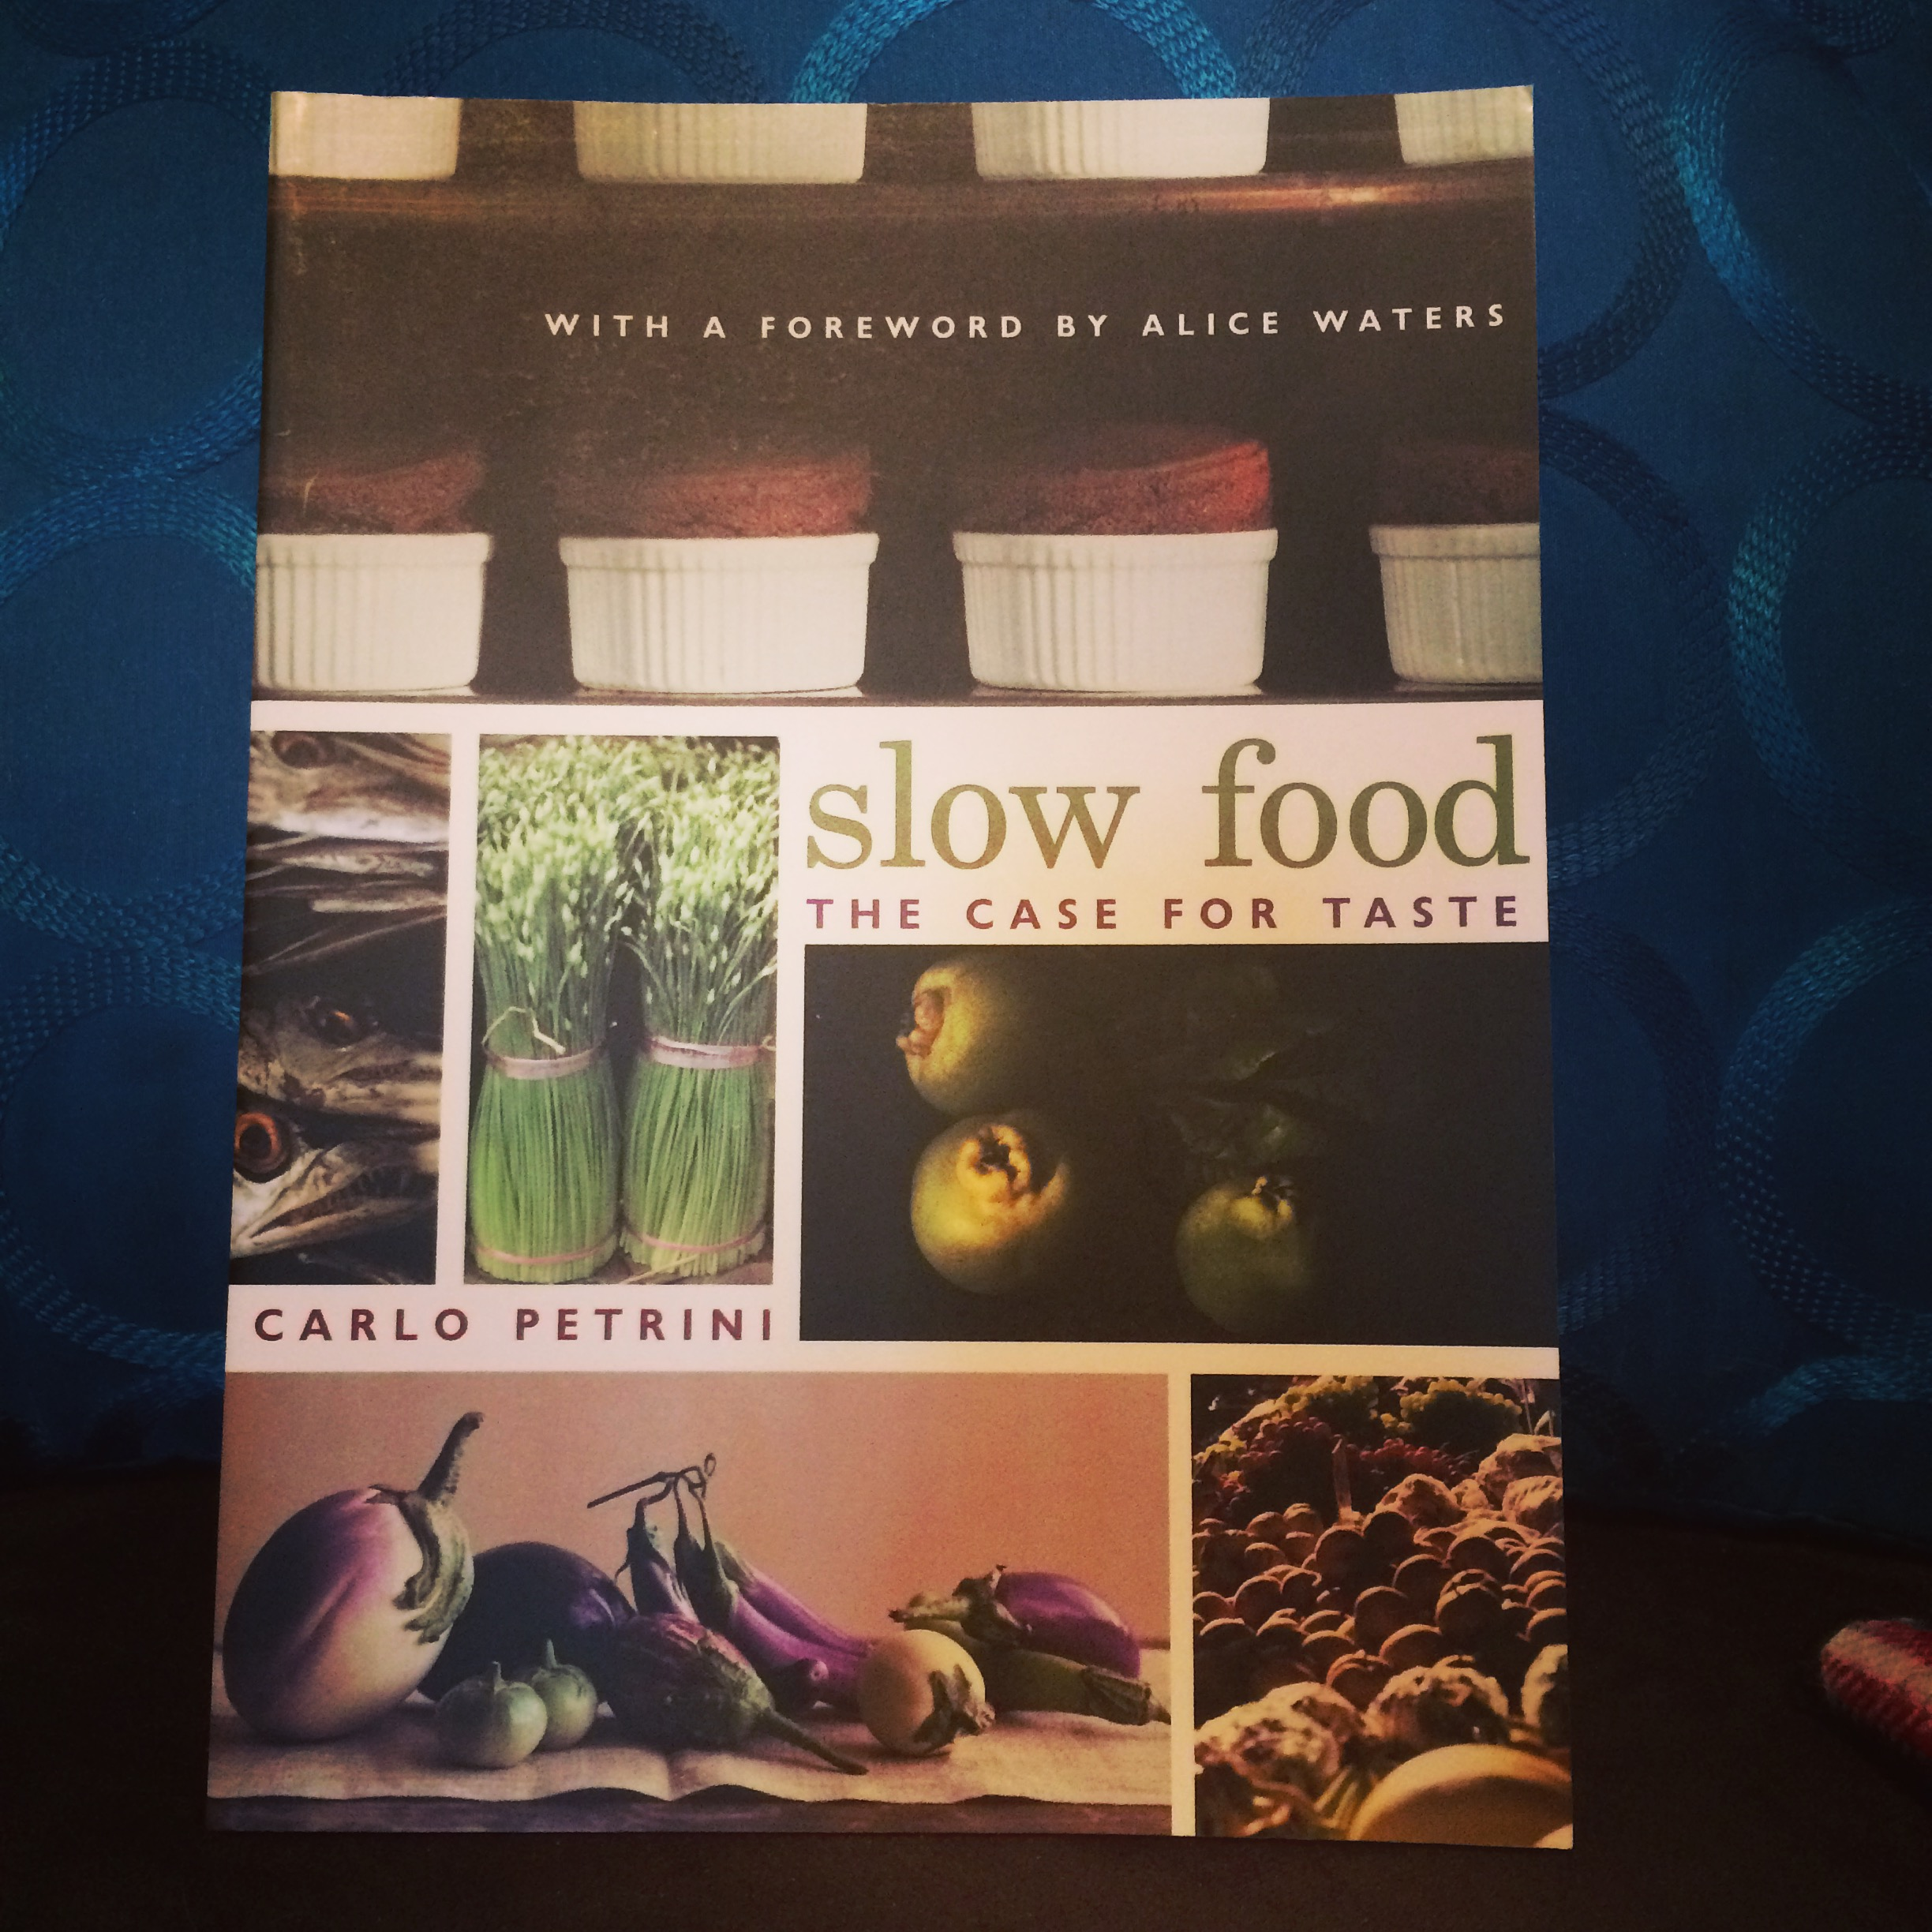 All about the Slow Food movement - really quite interesting